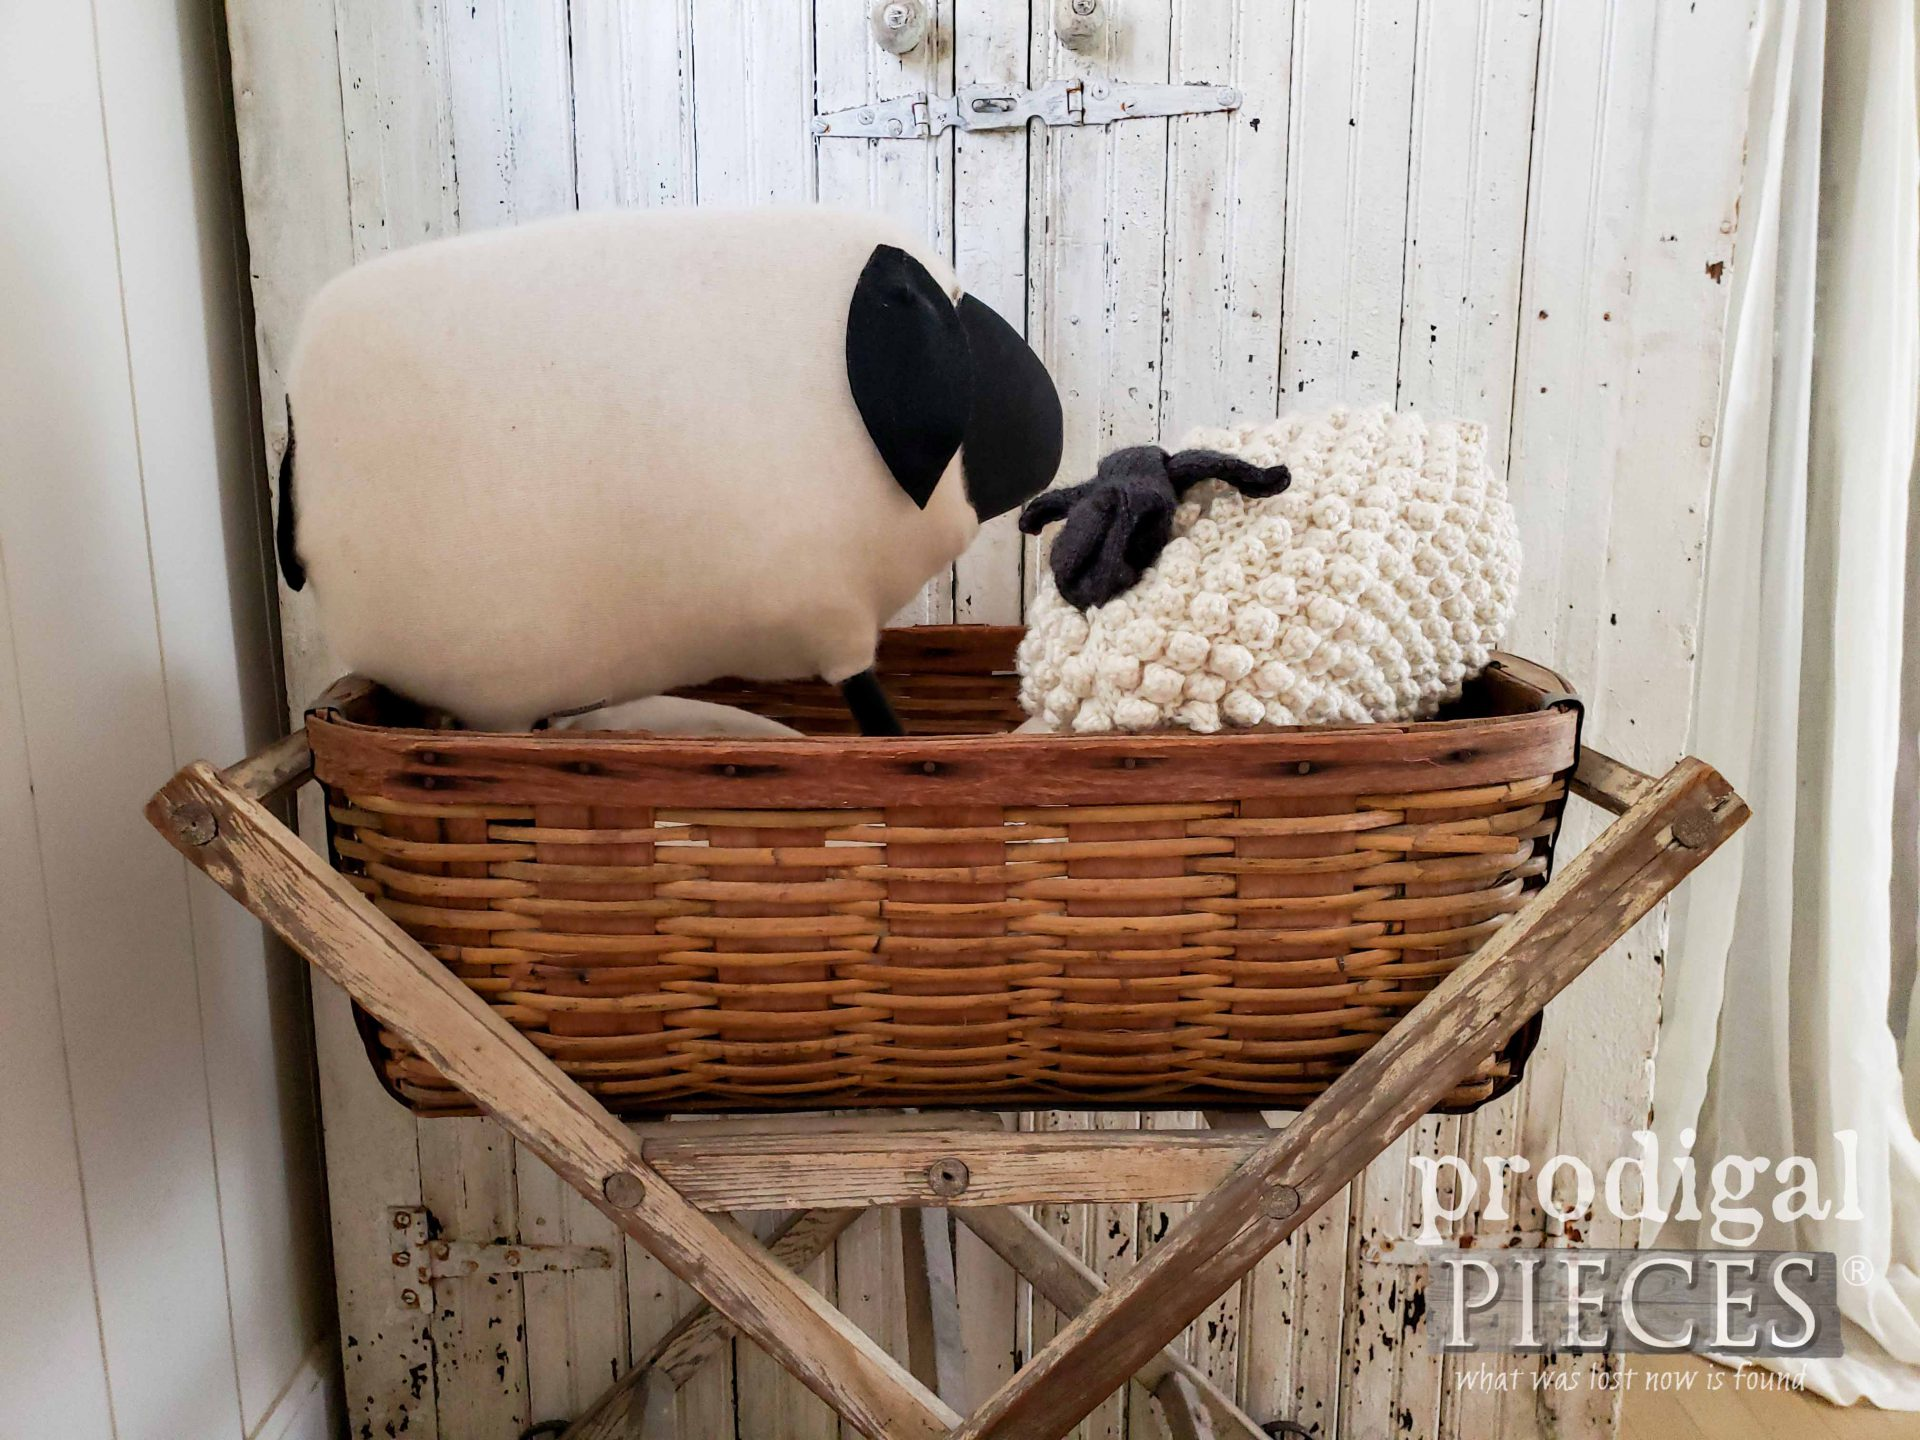 Handmade Woolly Sheep by Larissa of Prodigal Pieces | prodigalpieces.com #prodigalpieces #diy #home #homedecor #crafts #farmhouse